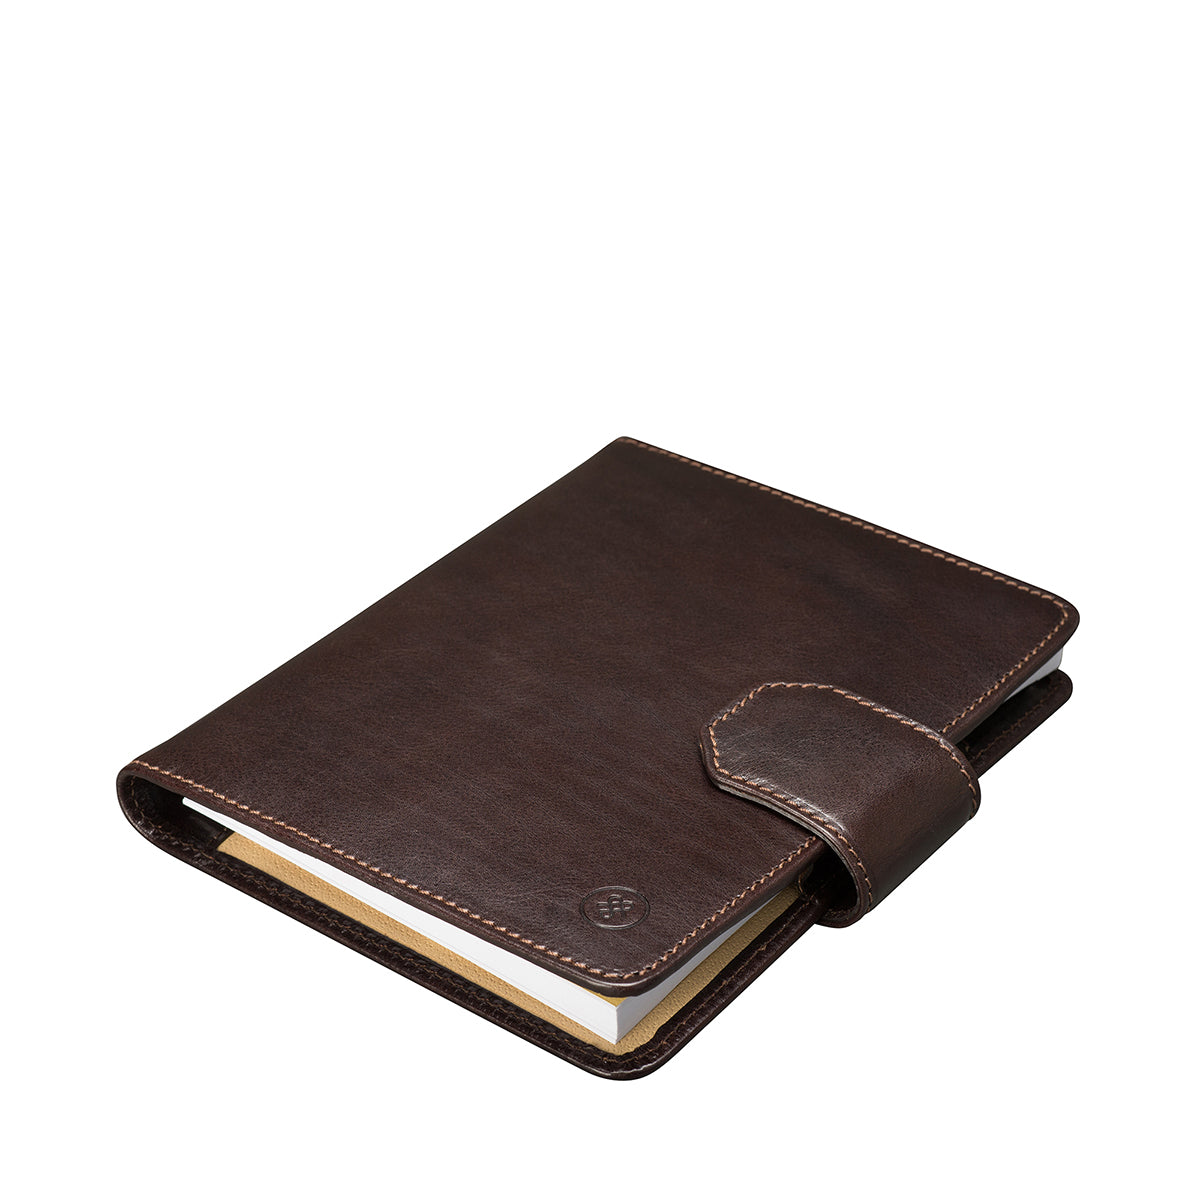 Image 3 of the 'Mozzano' Dark Chocolate Veg-Tanned Leather A5 Padfolio